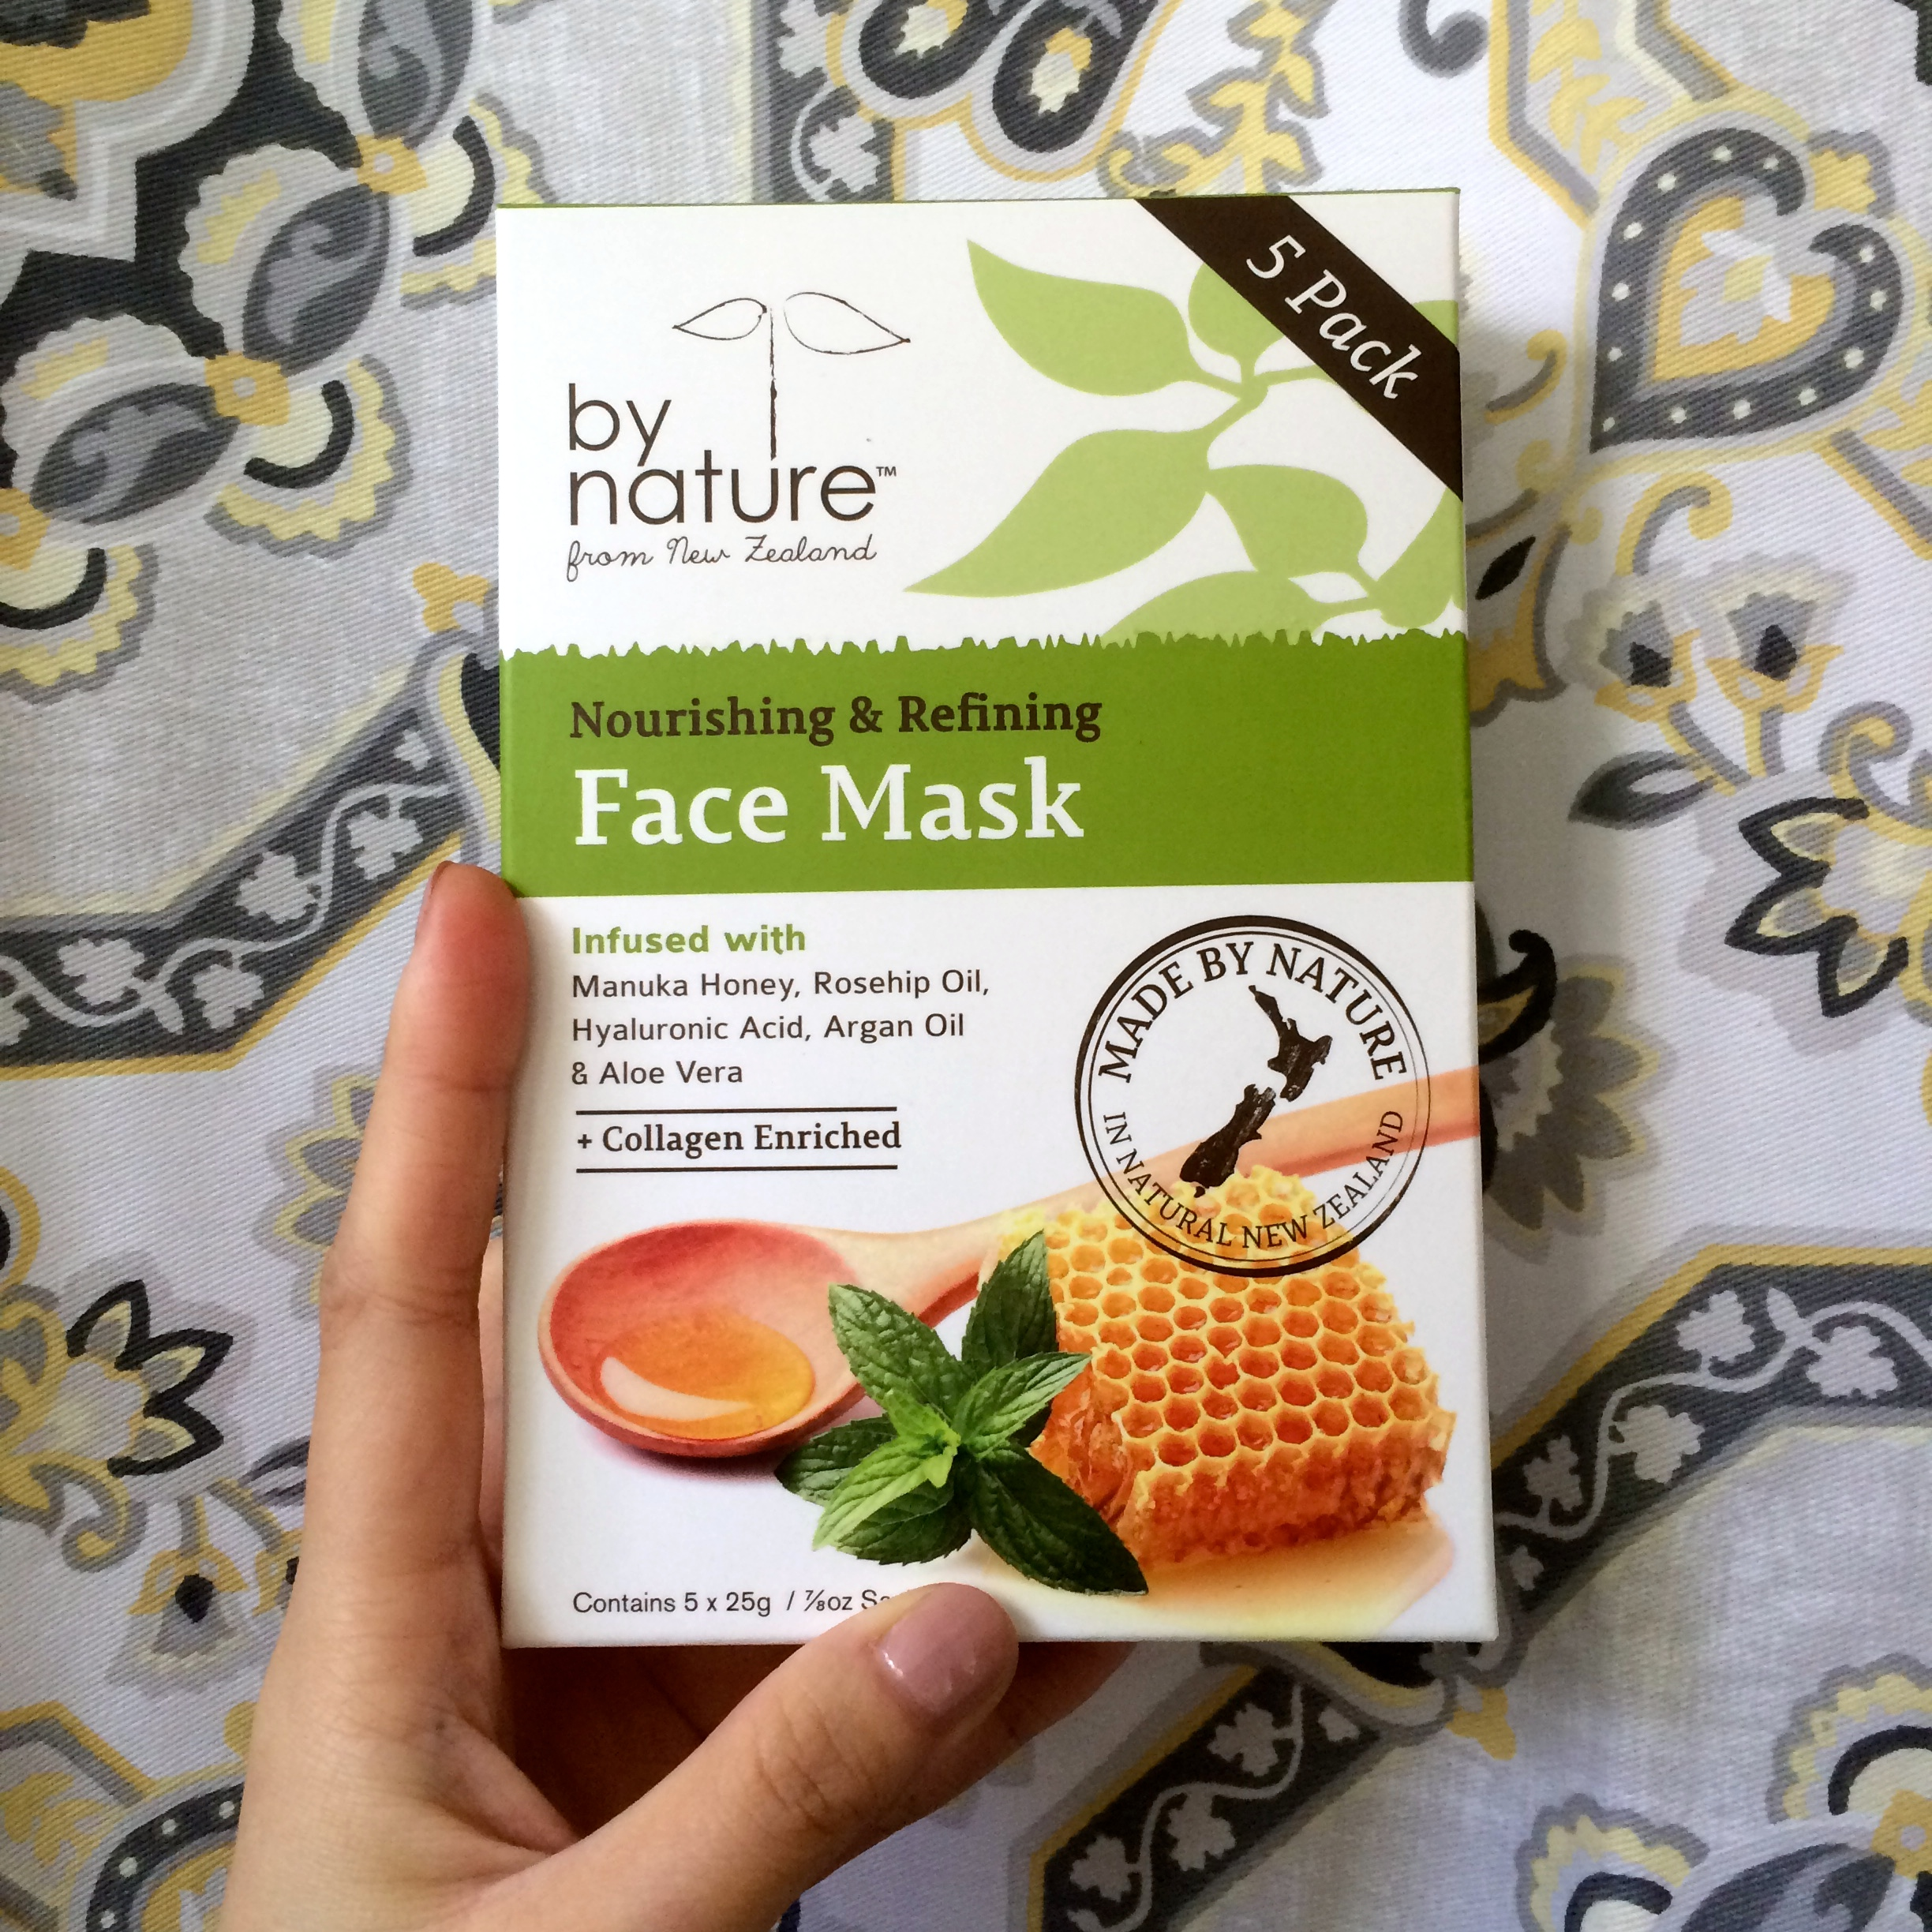 By Nature From New Zealand Face Mask Review